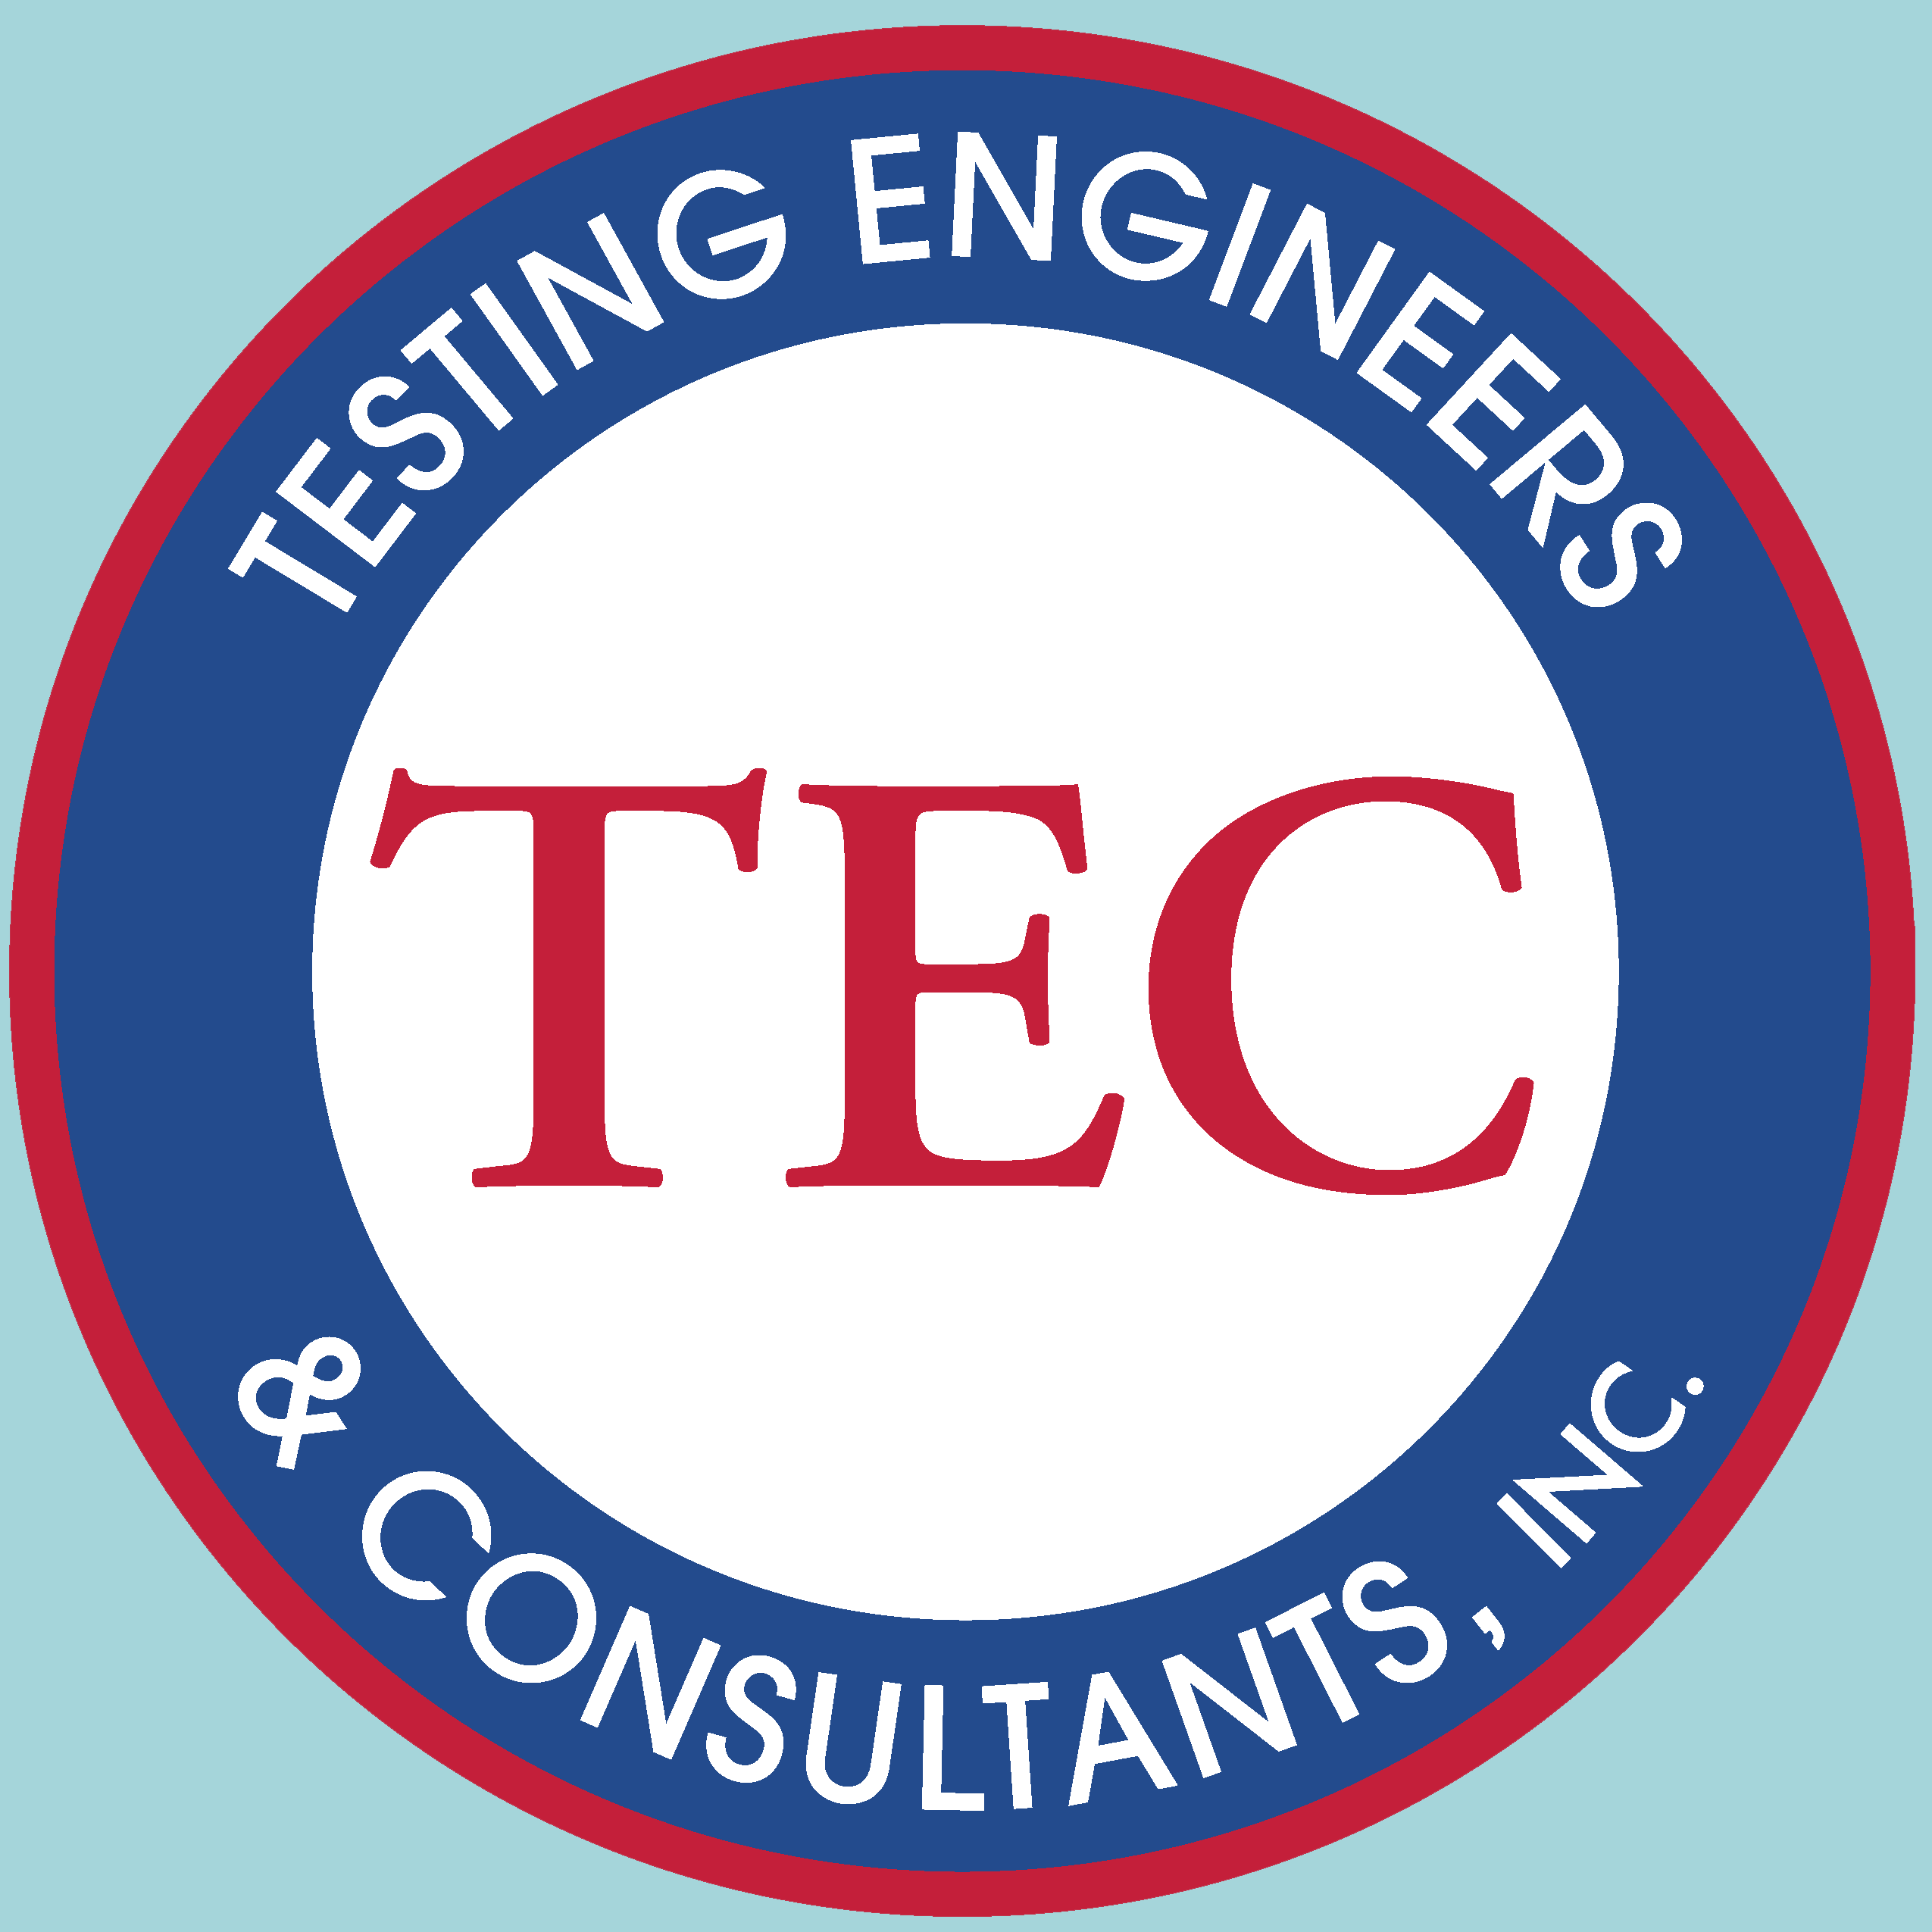 Testing Engineers & Consultants, Inc